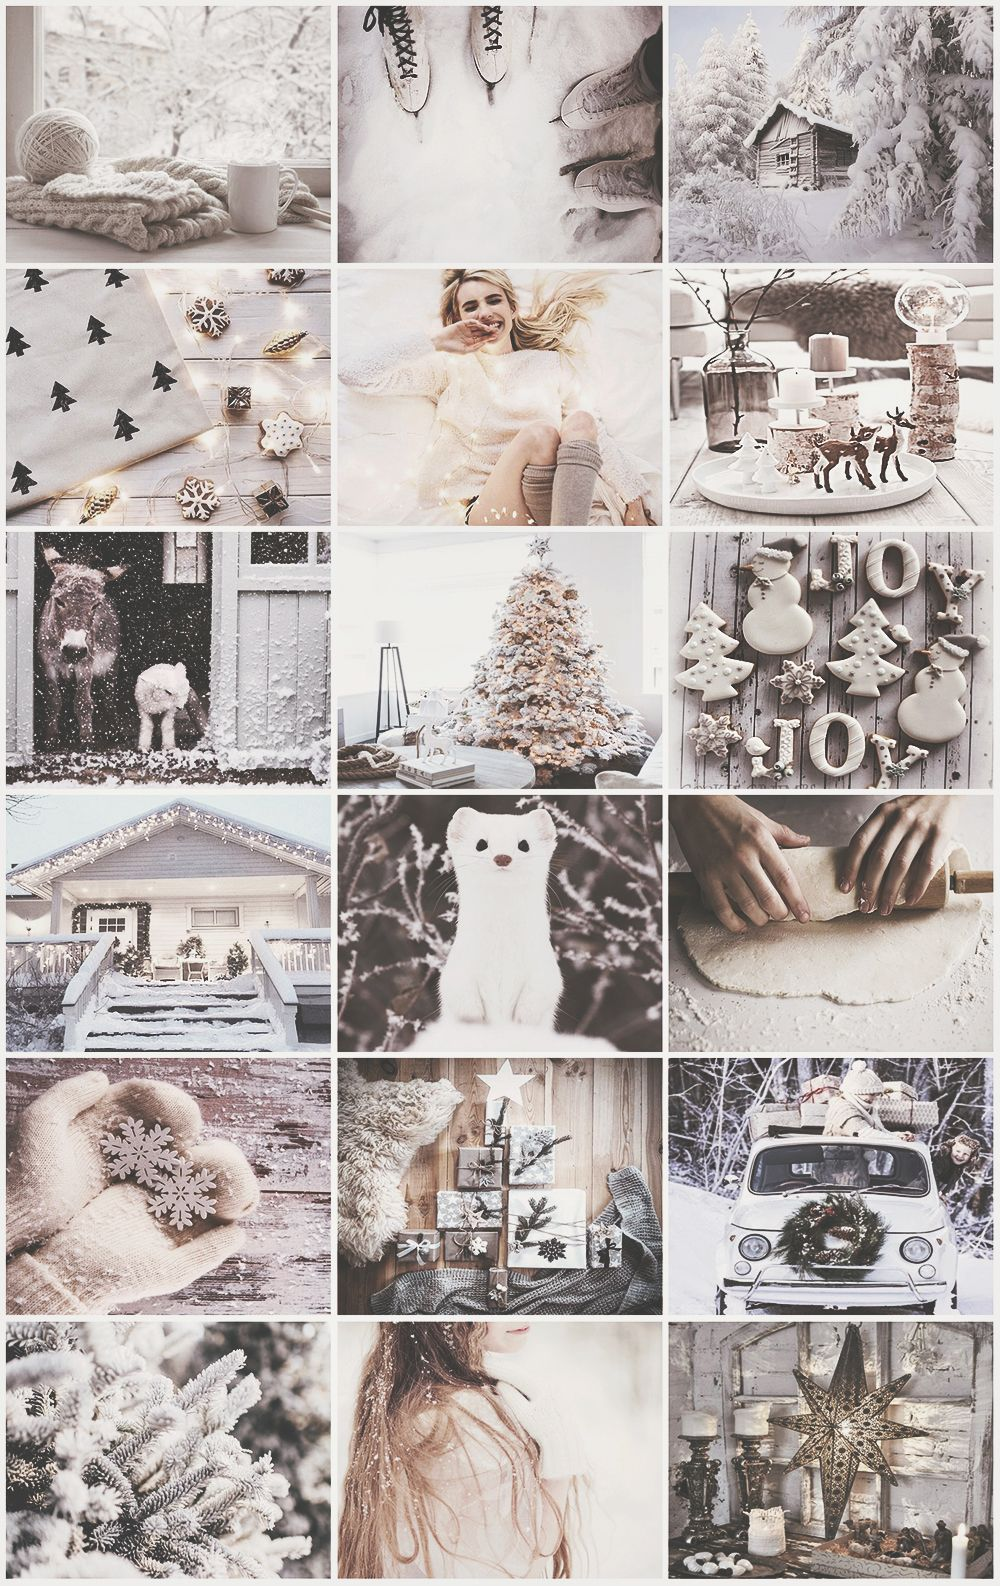 White Christmas Aesthetic Cute Christmas Wallpaper Christmas Collage Wallpaper Iphone Christmas